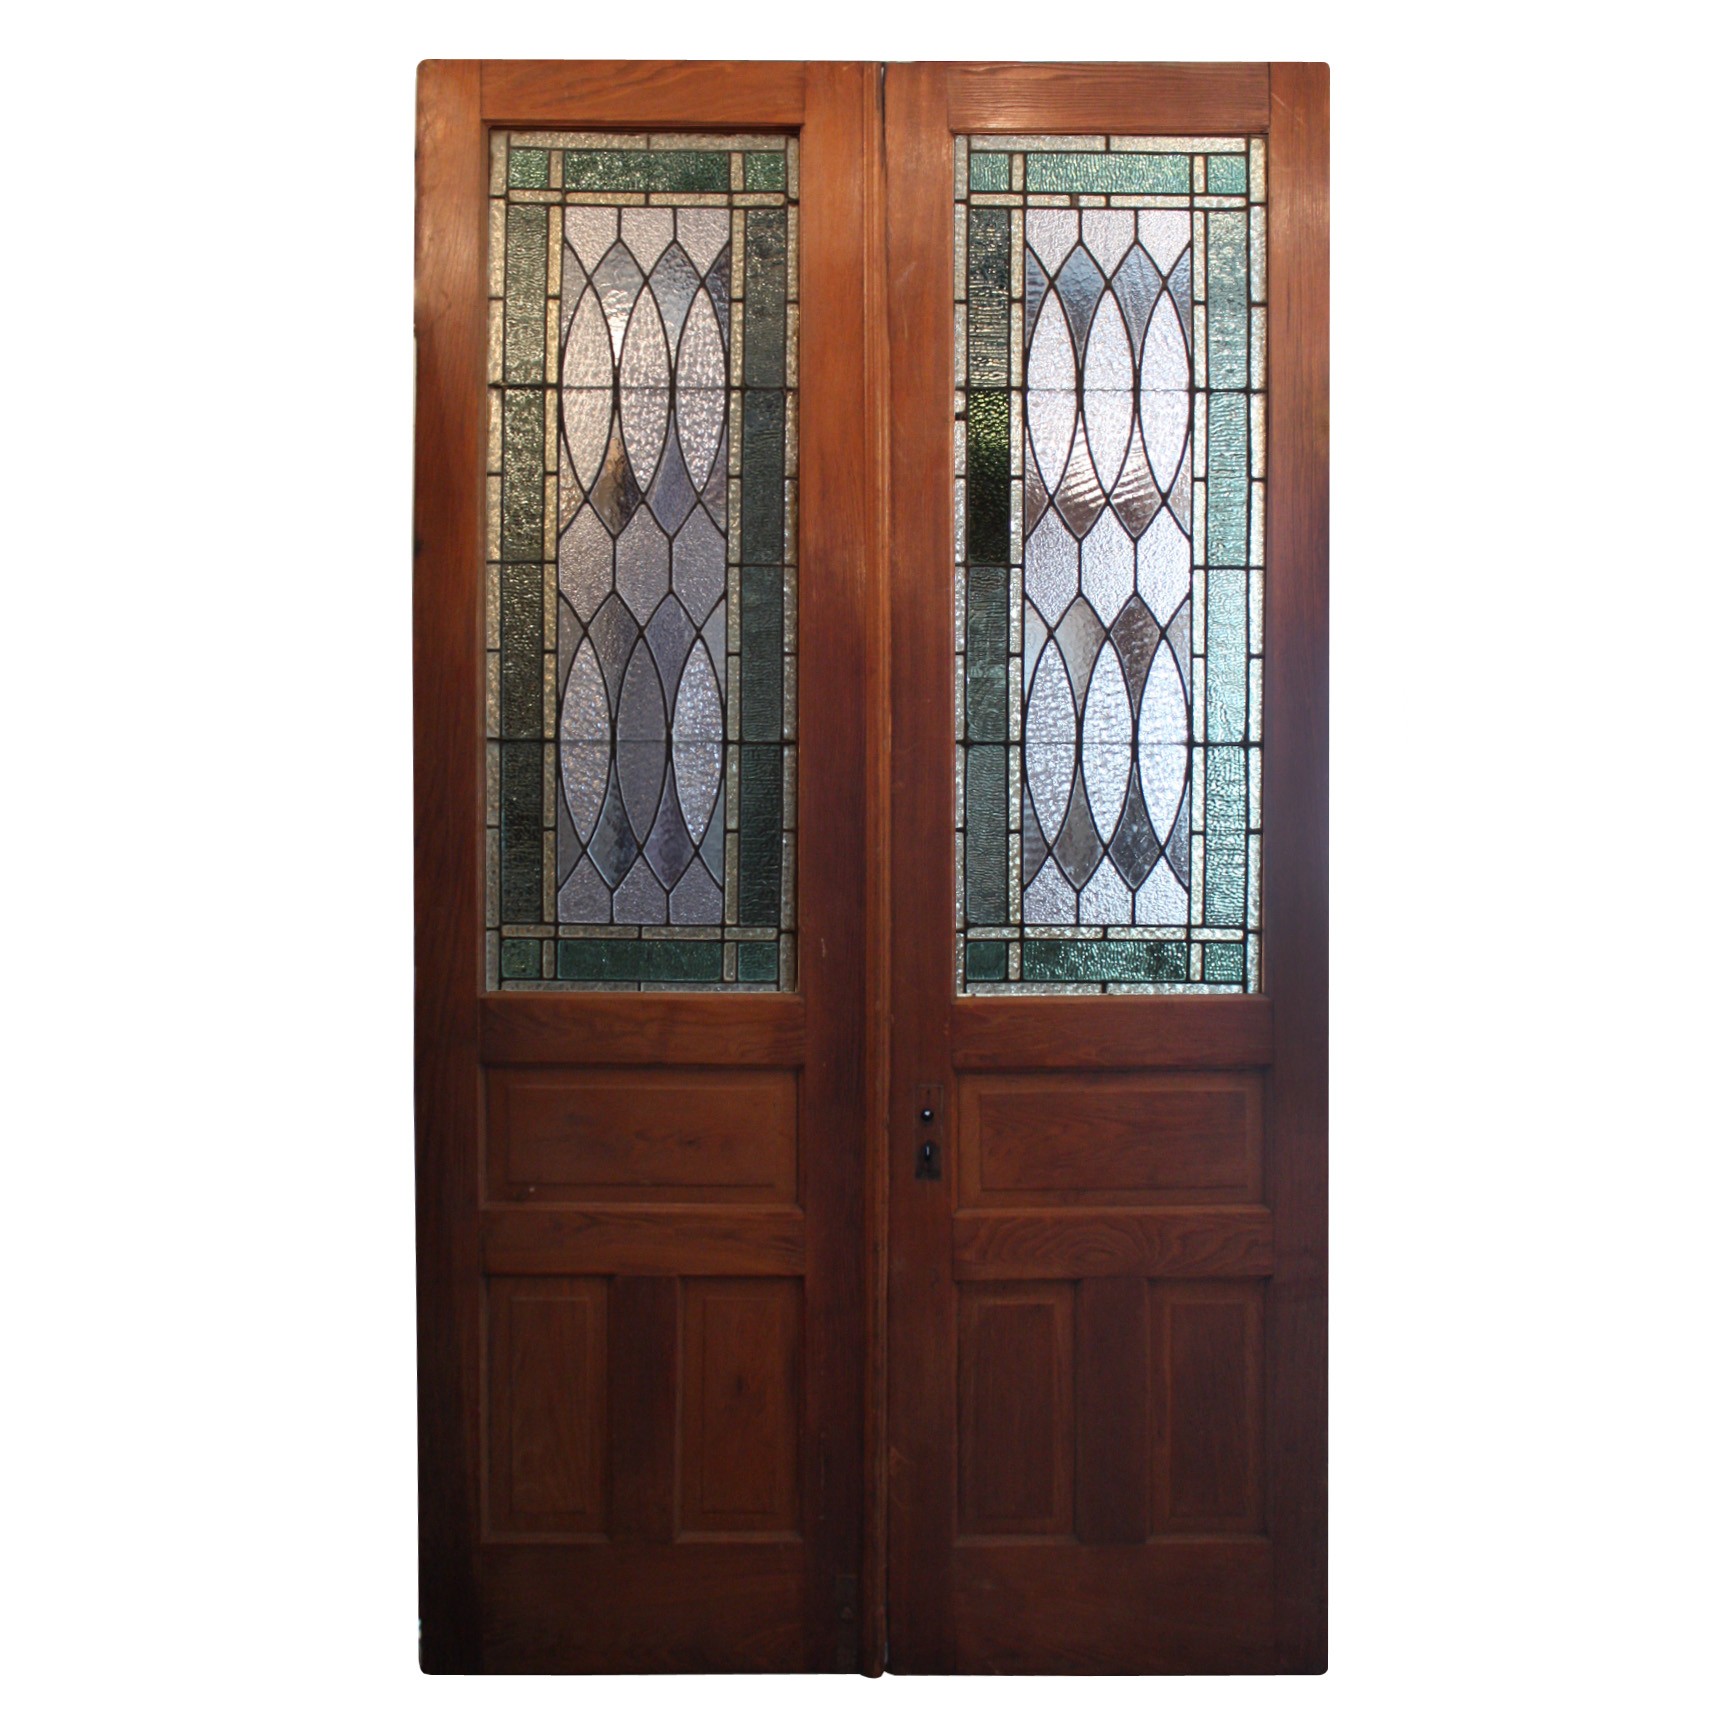 Superb Antique Pair Of Oak Doors With Stained Glass Early 1900 S Ned225 Rw For